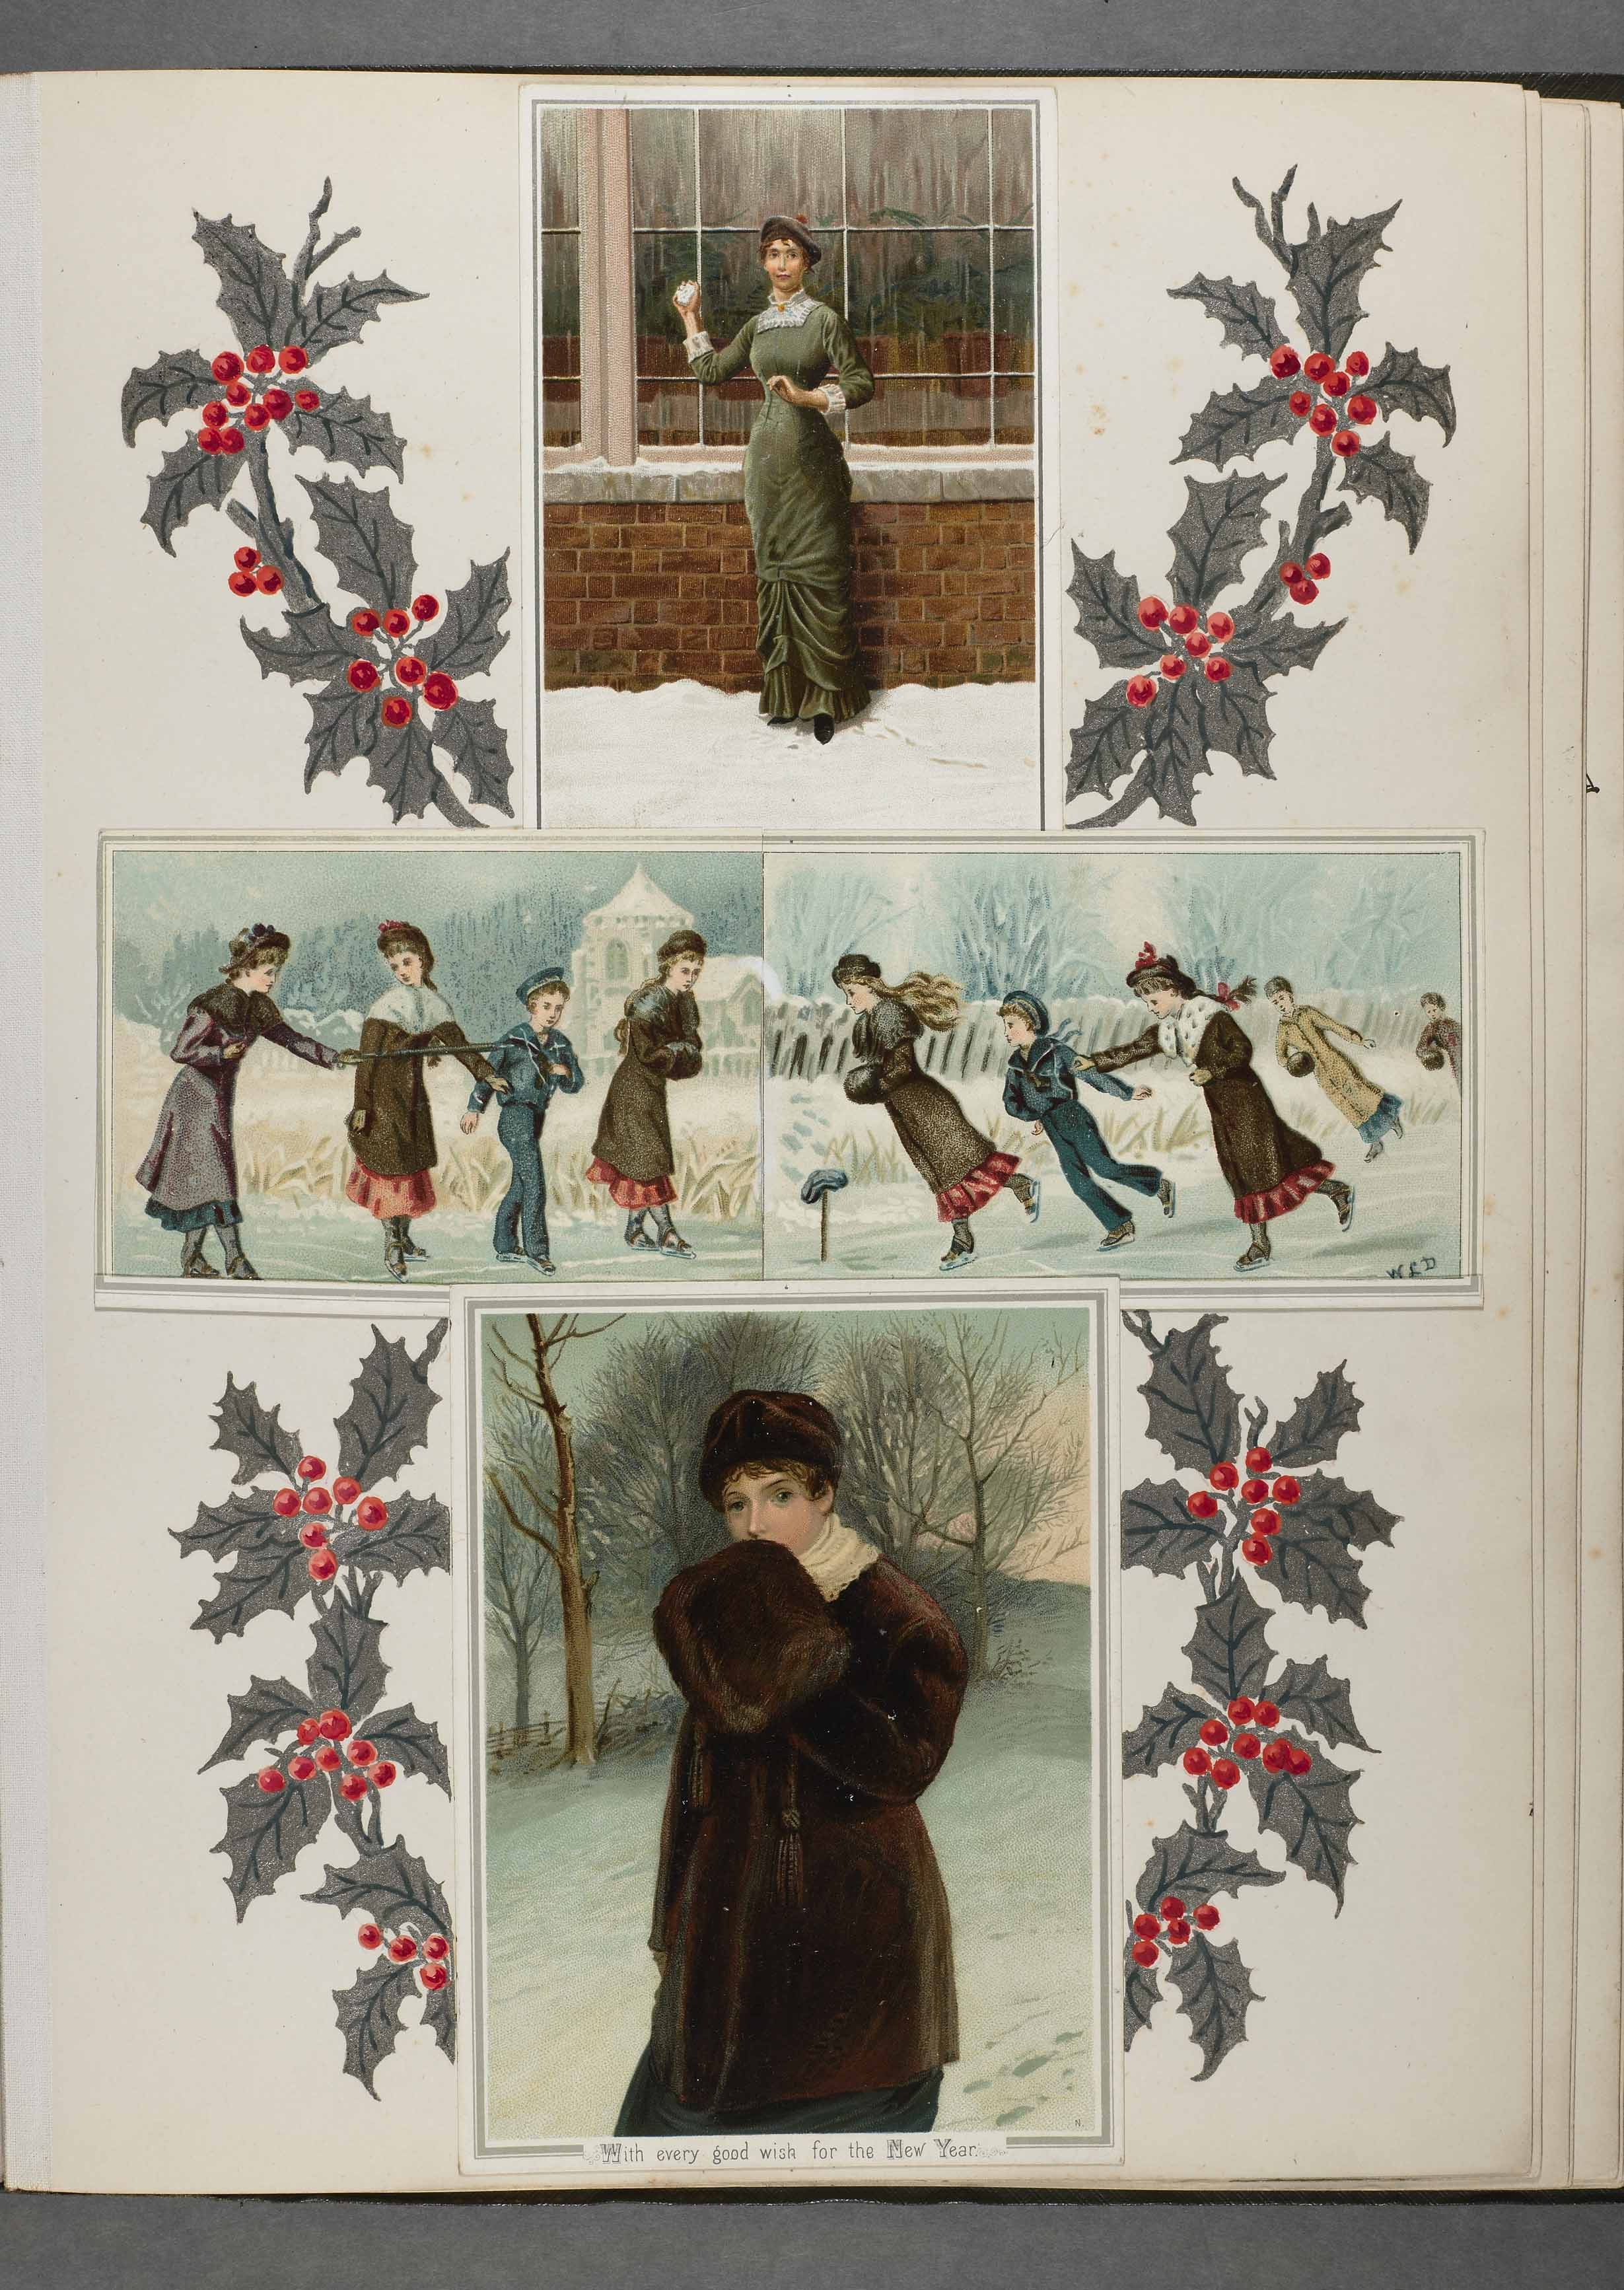 Competition page. For their Exhibition of Christmas card designs of 1881-1882, Hildesheimer & Faulkner invited various amateurs to arrange these cards as they sought fit and add their own decoration. A number of prizes were awarded for the best designs.